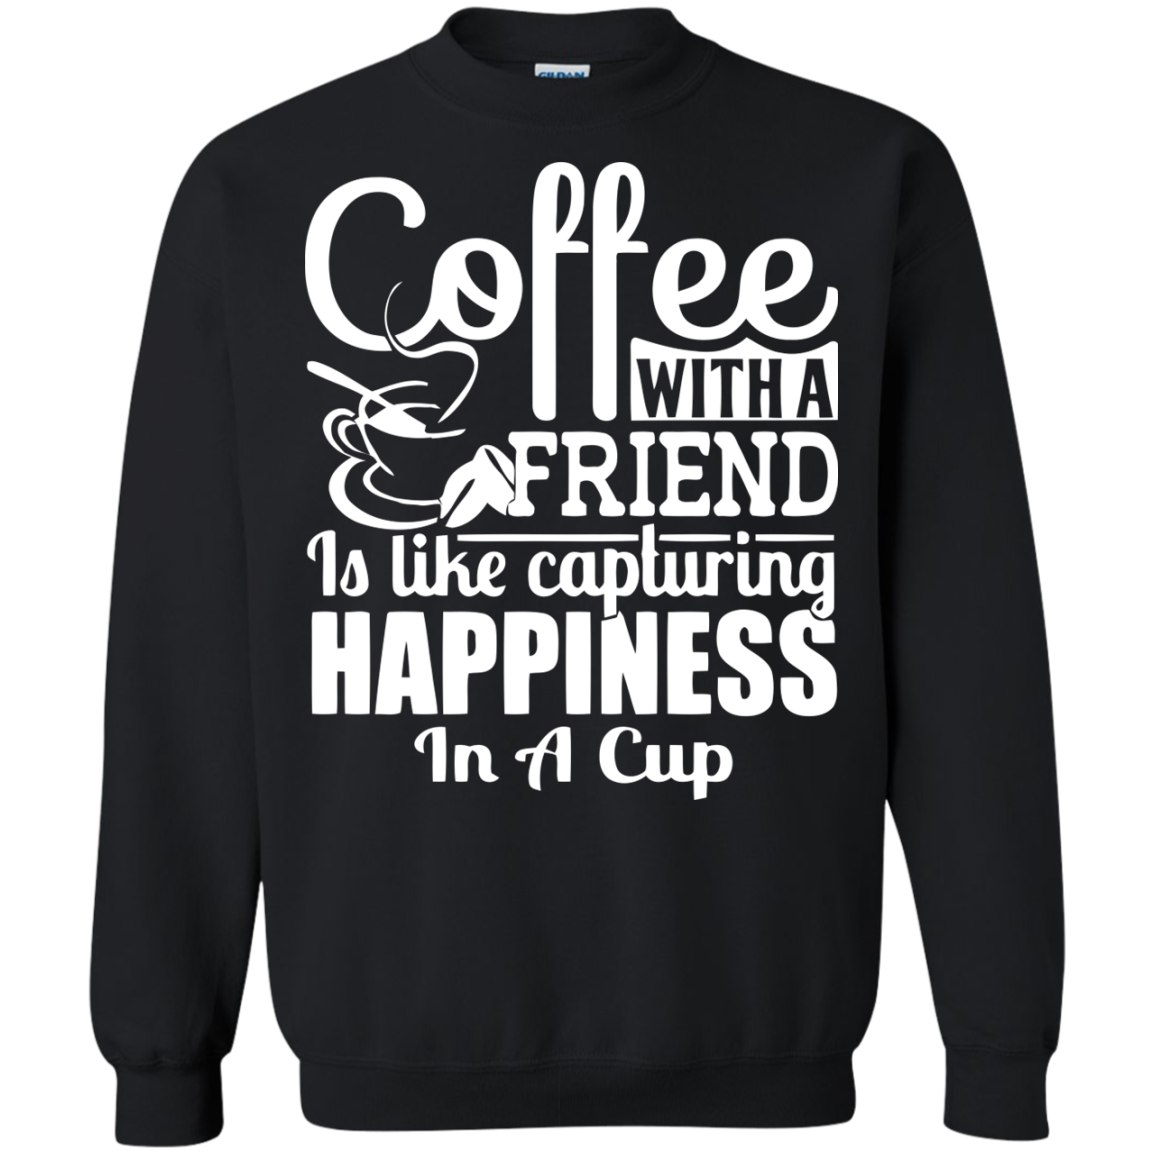 Coffee T-Shirts Hoodies Coffee With Friend Like Capturing Happiness - Blue Fox